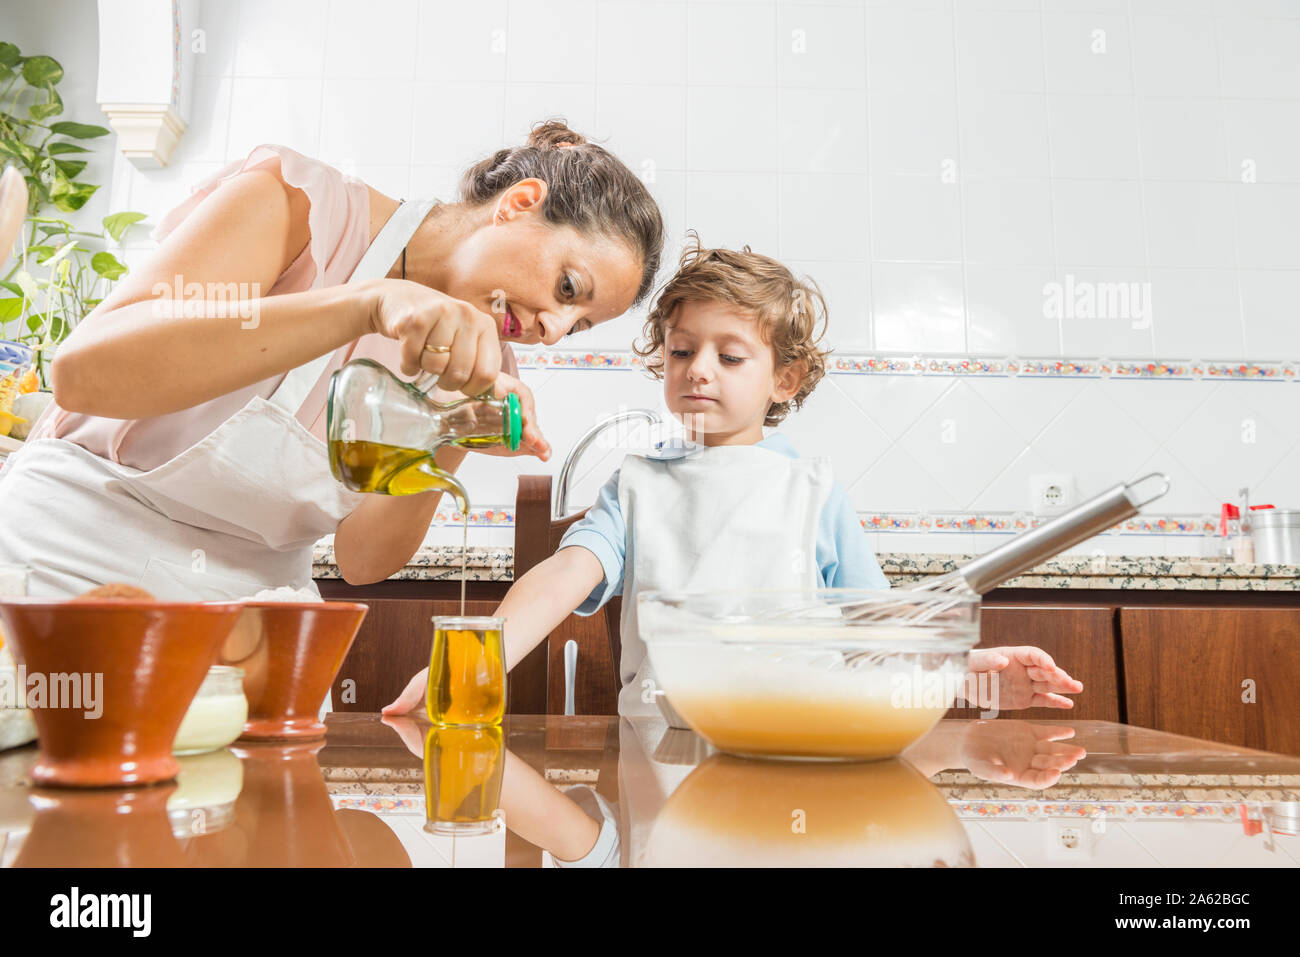 https://c8.alamy.com/comp/2A62BGC/a-woman-and-a-child-cooking-a-homemade-sponge-cake-together-2A62BGC.jpg